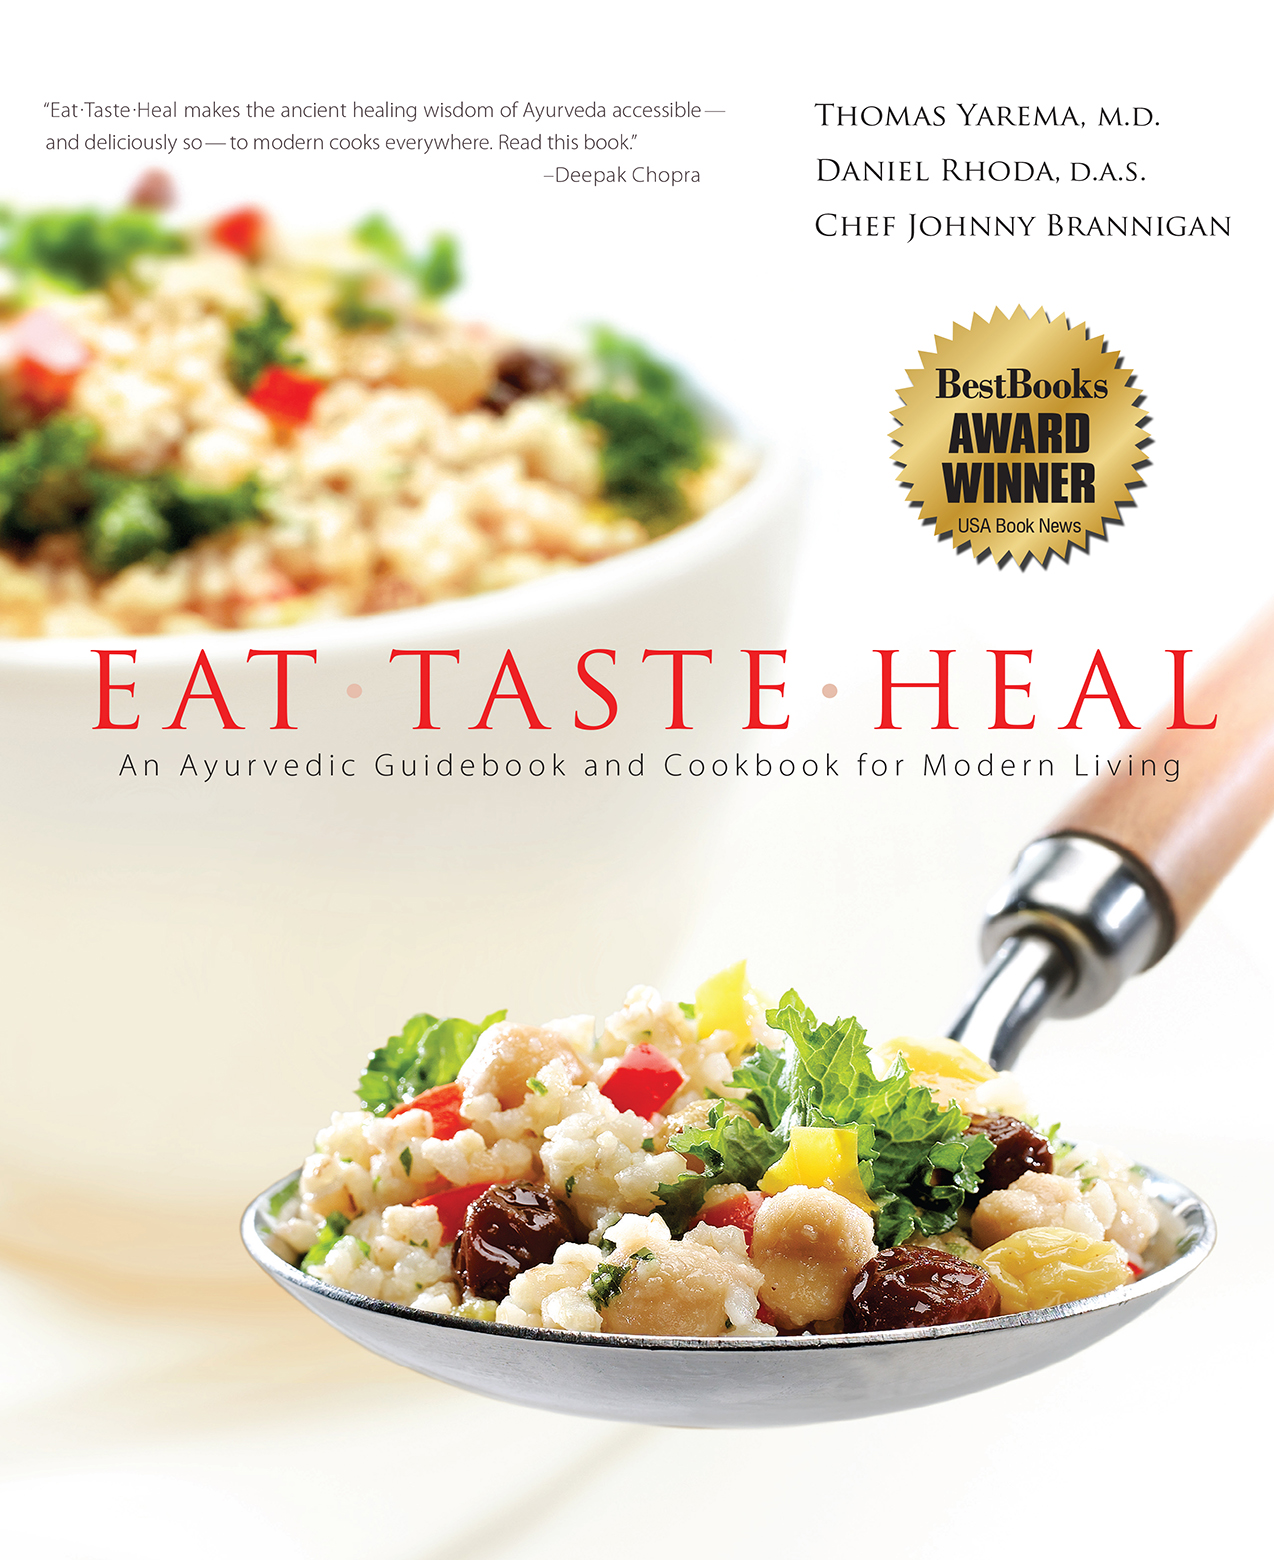 Eat taste heal ayurvedic cookbook and ancient wisdom of ayurveda eat taste heal an ayurvedic cookbook for modern living forumfinder